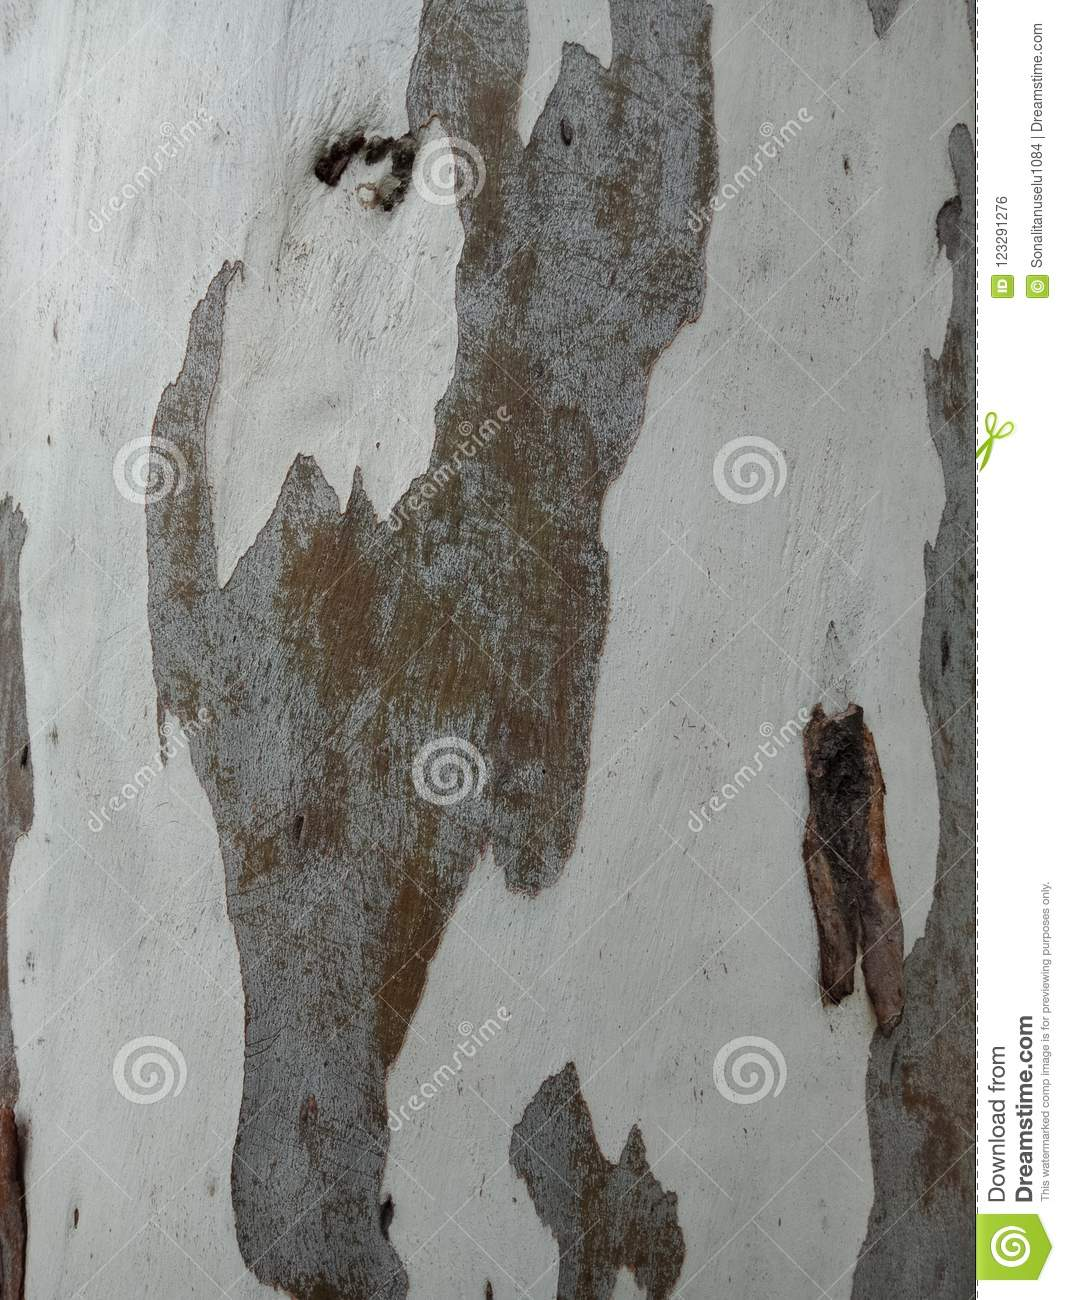 Tree surface textured background. nature background wallpaper.